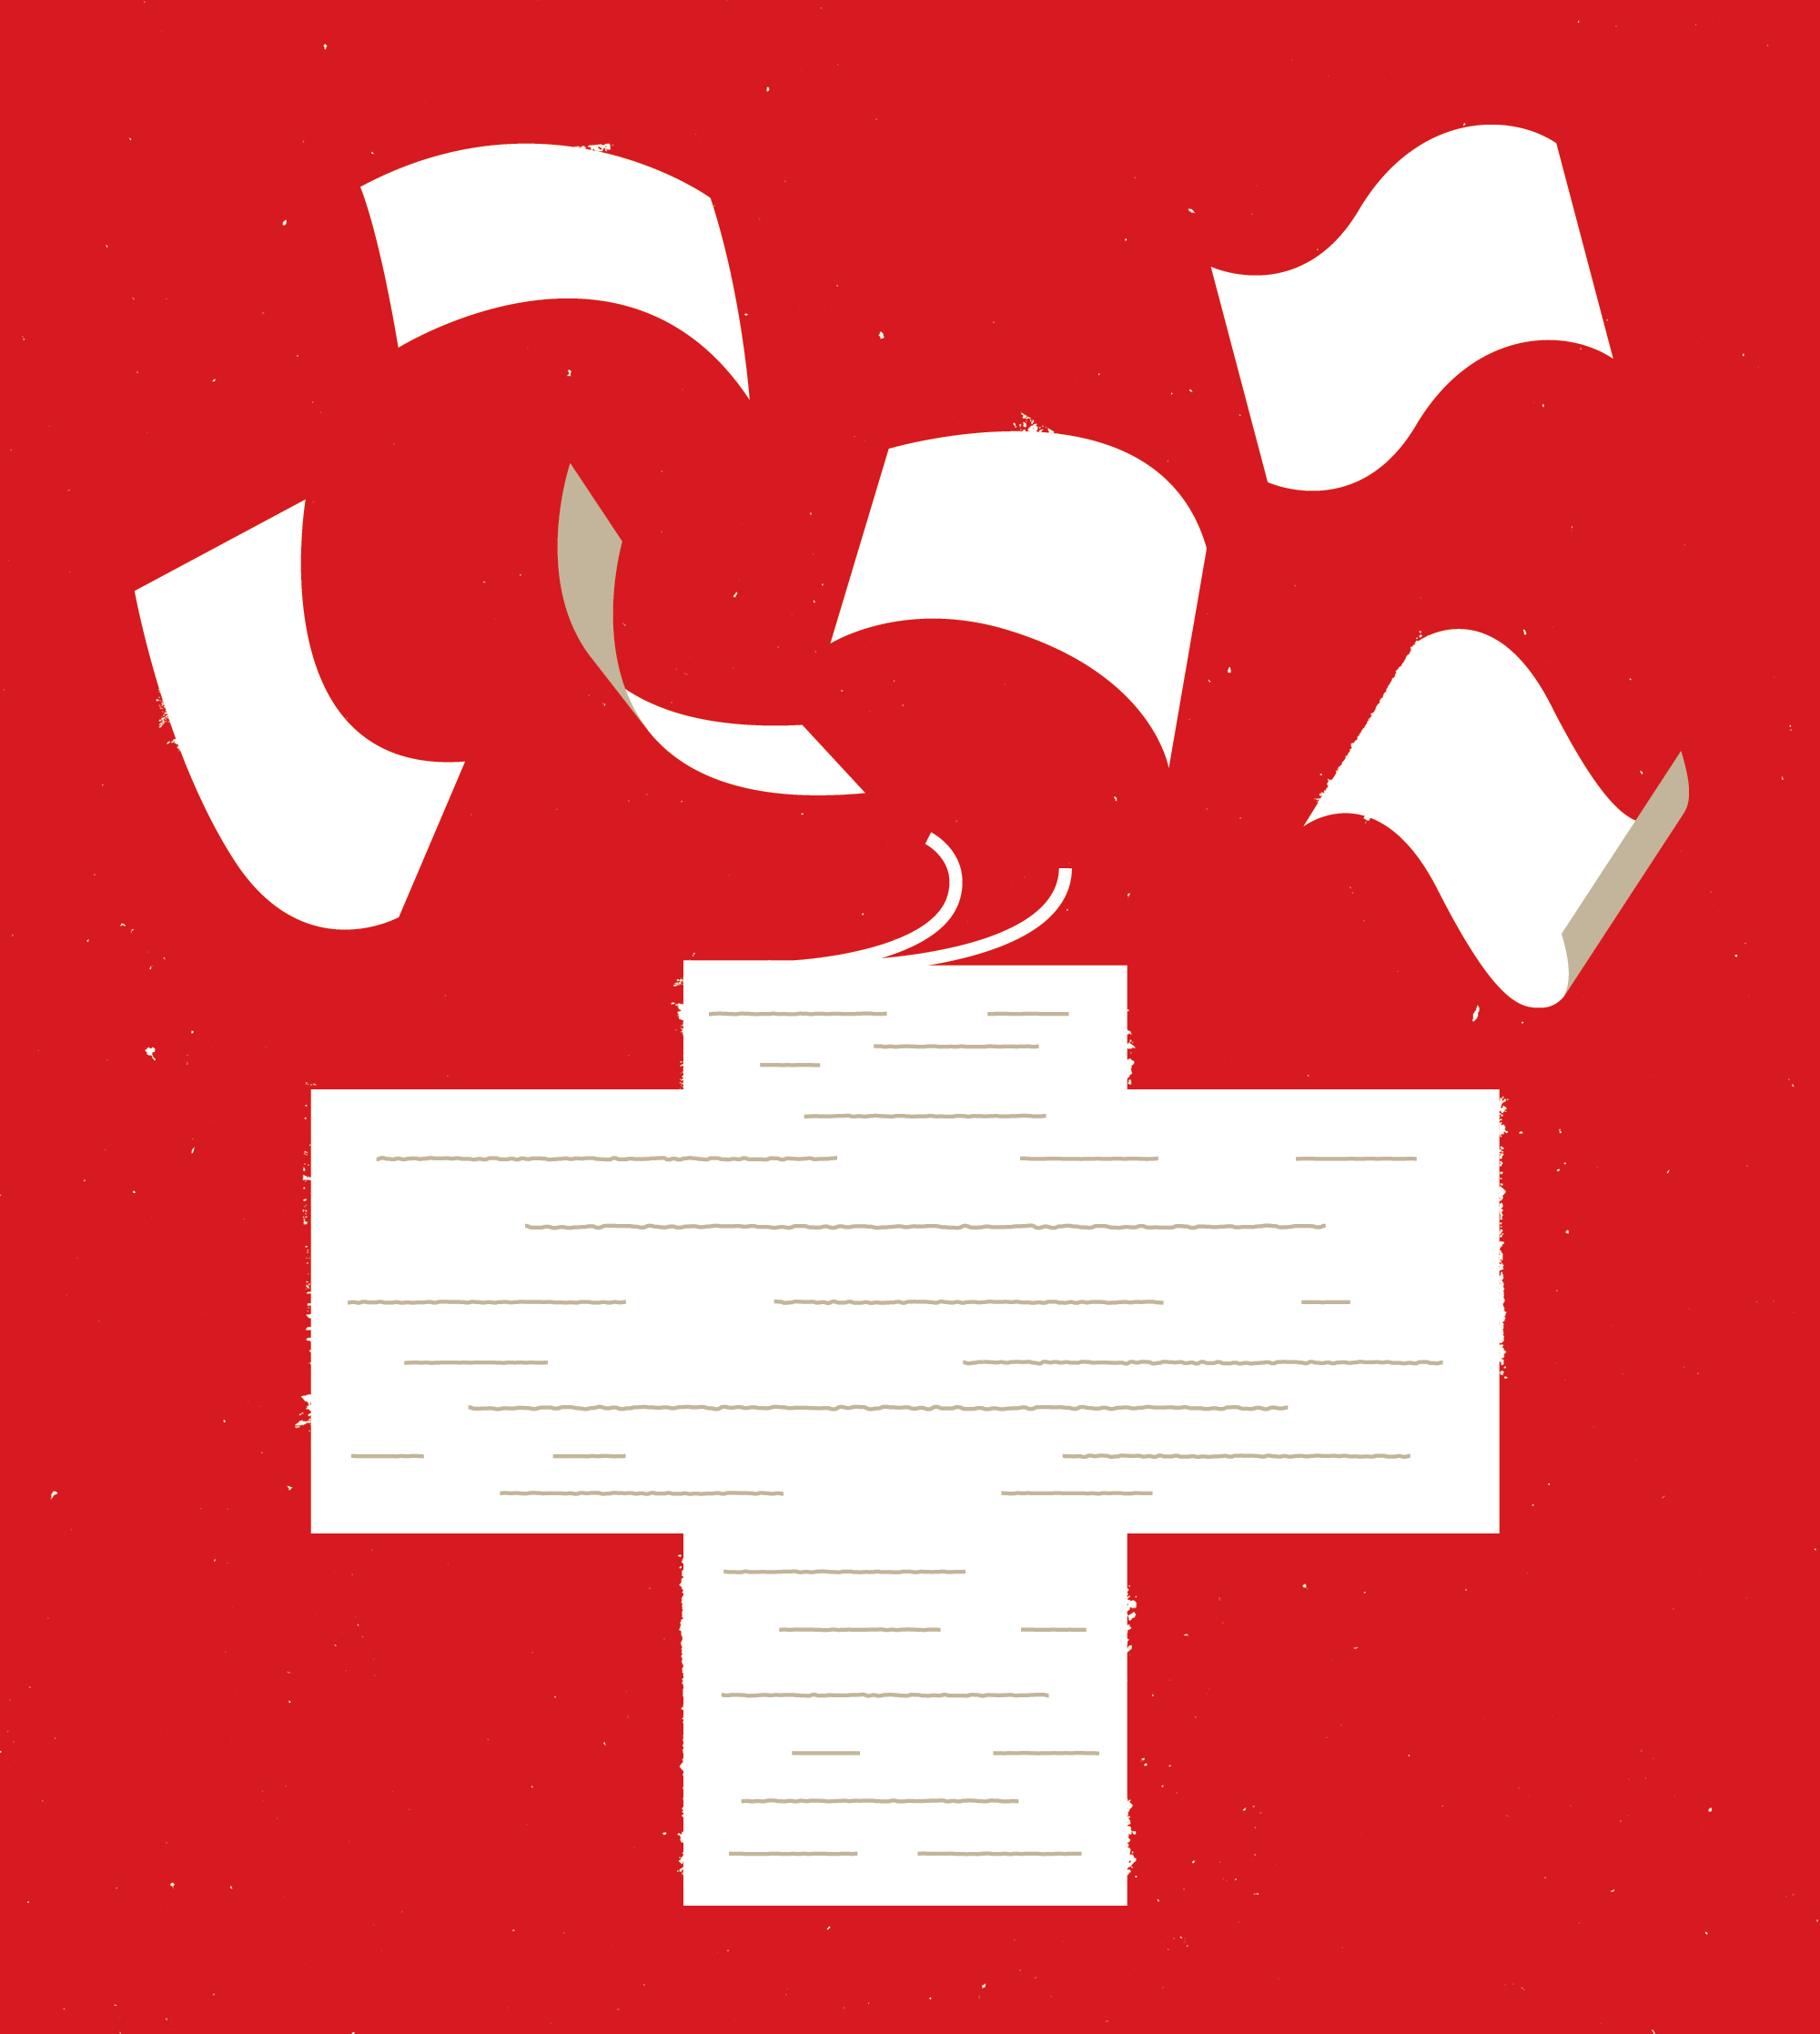 Medical Records are Going Missing